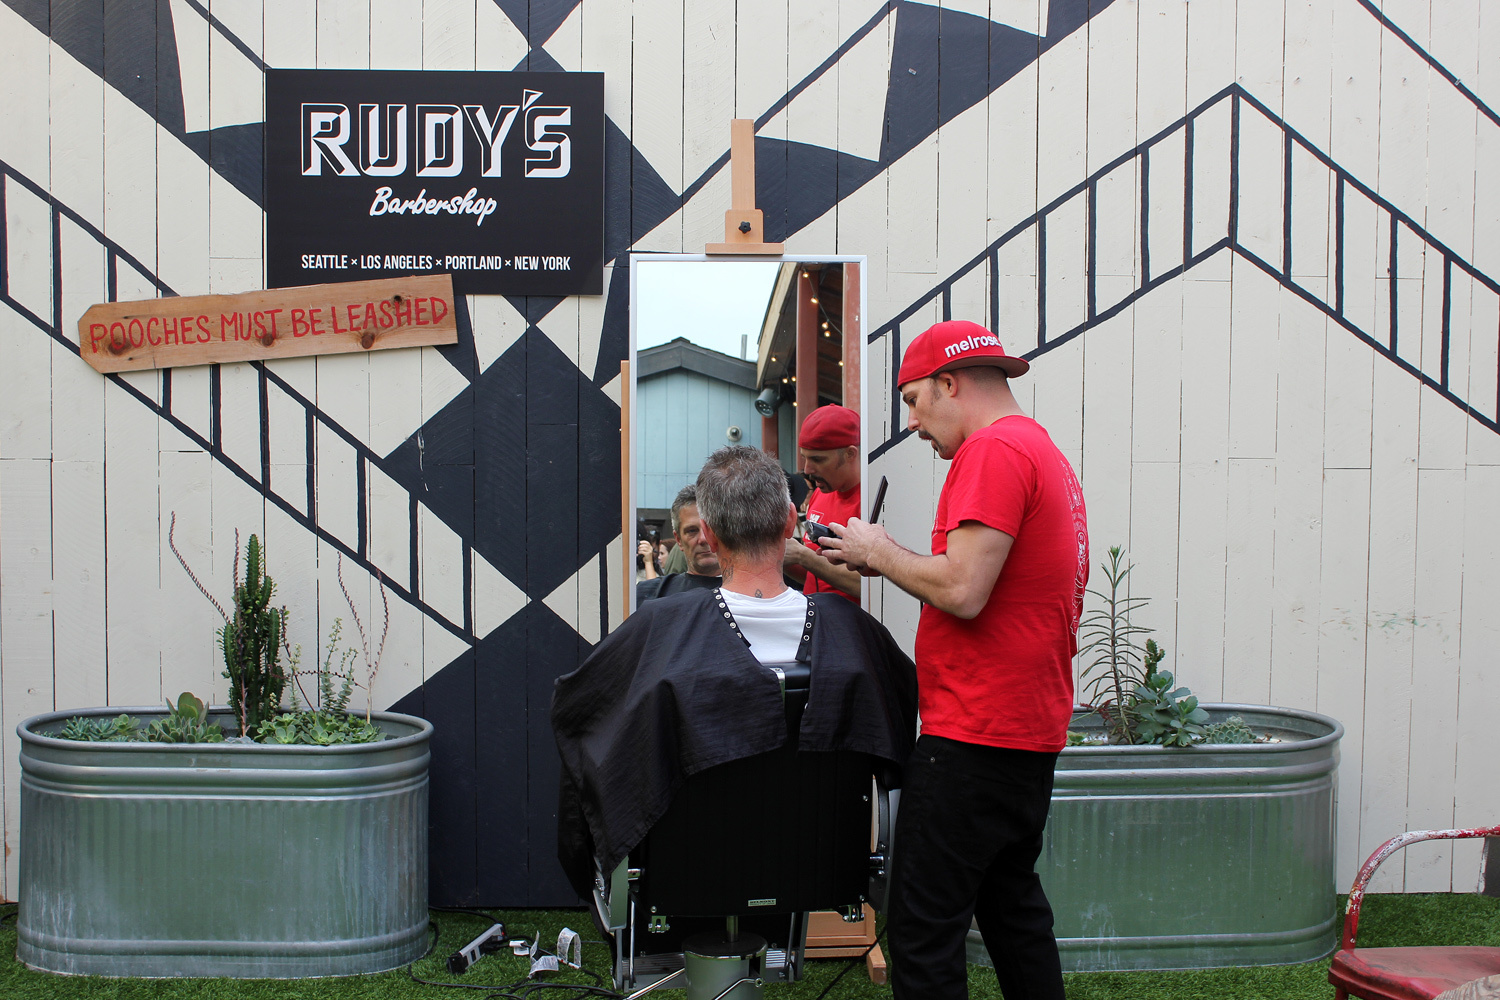 Free shave and a haircut at TOMS courtesy of Rudy's Barbershop. (Photo by Glennie Rabin)